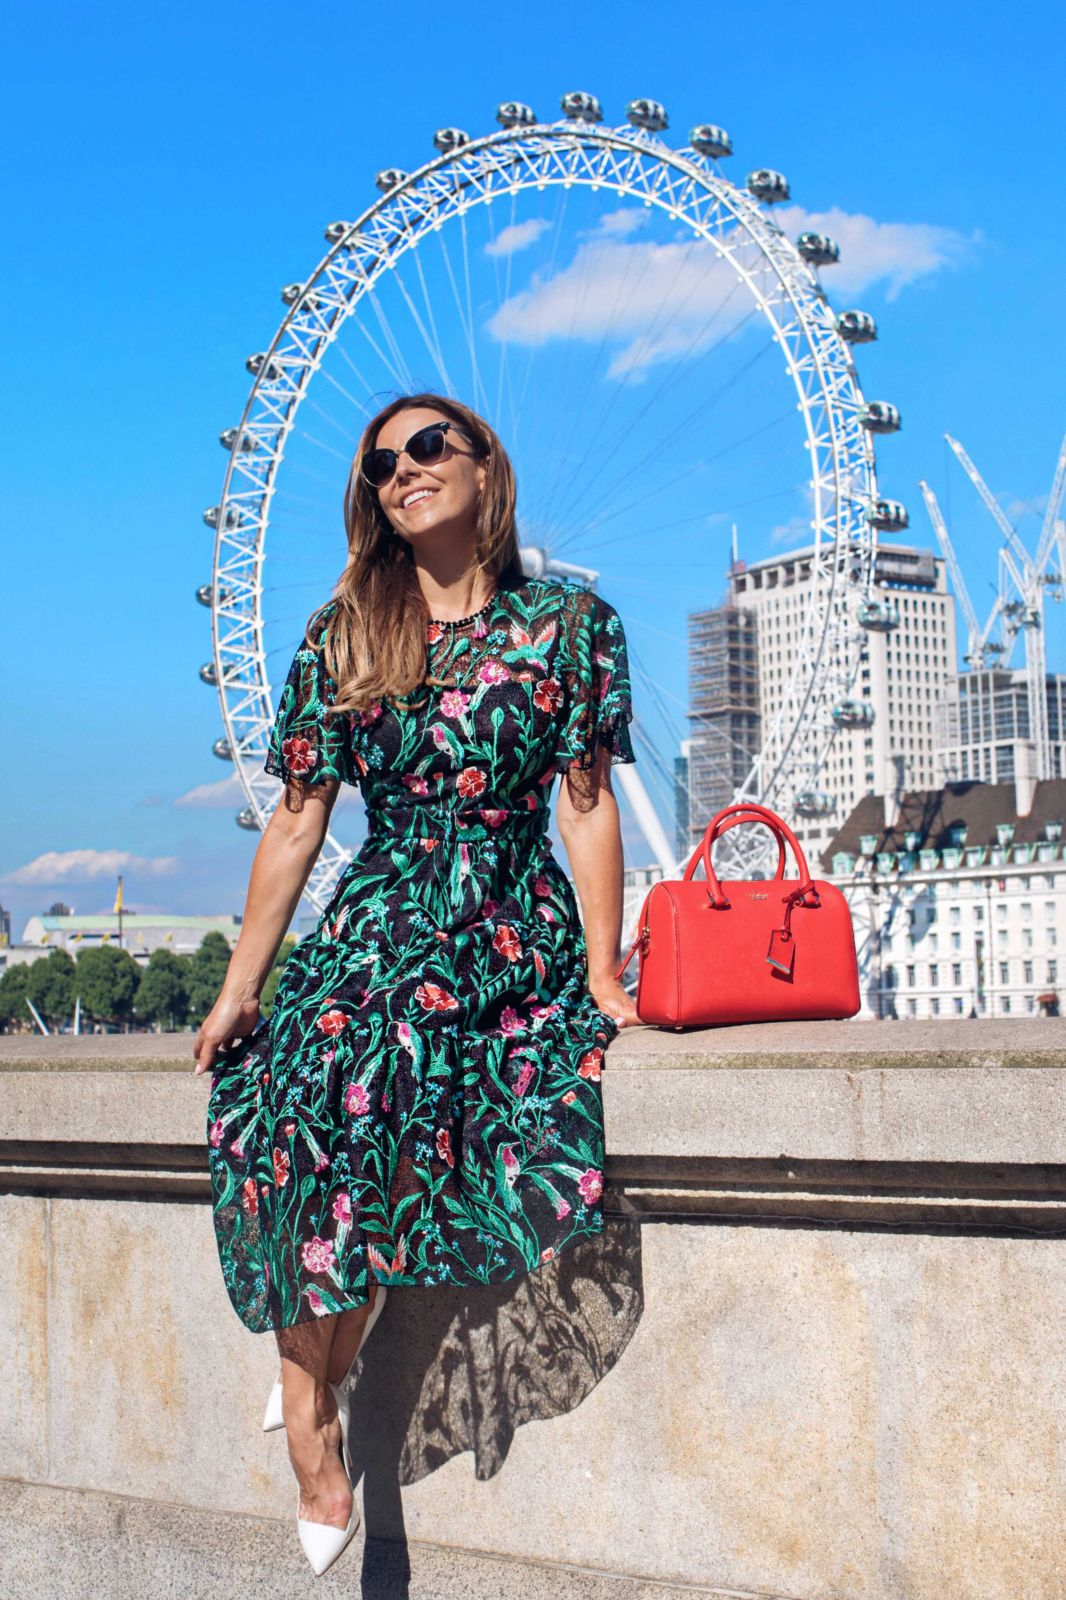 kate spade, embroidered dress, london eye